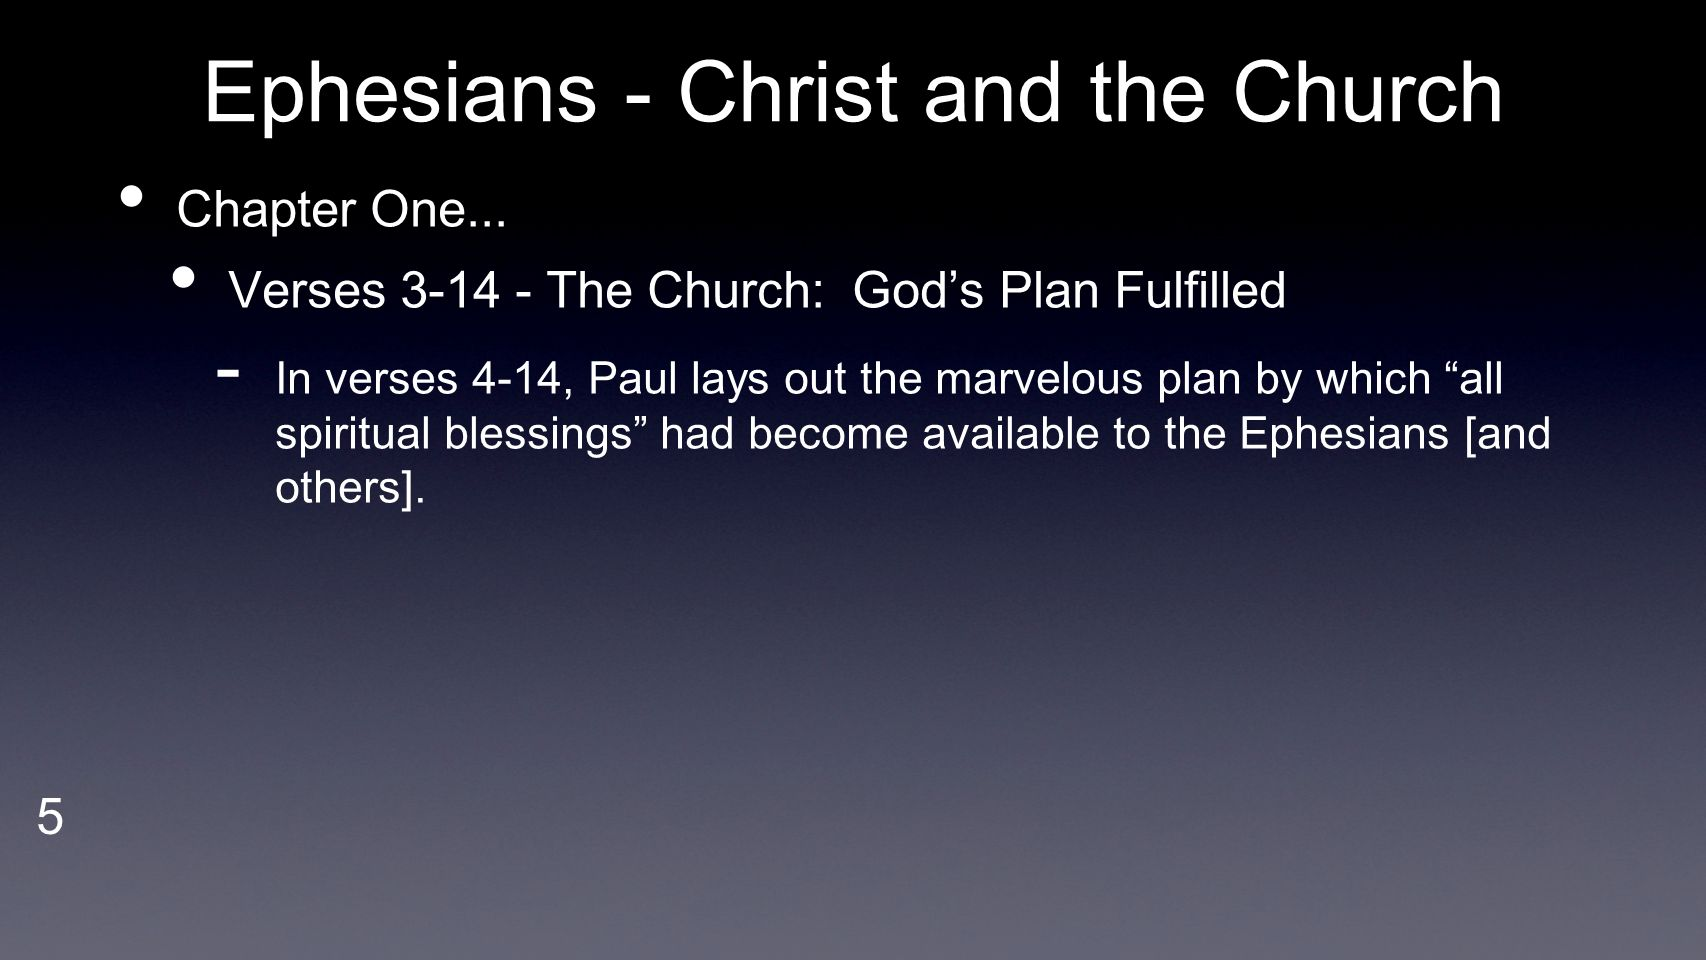 6 Ephesians - Christ and the Church Chapter One...